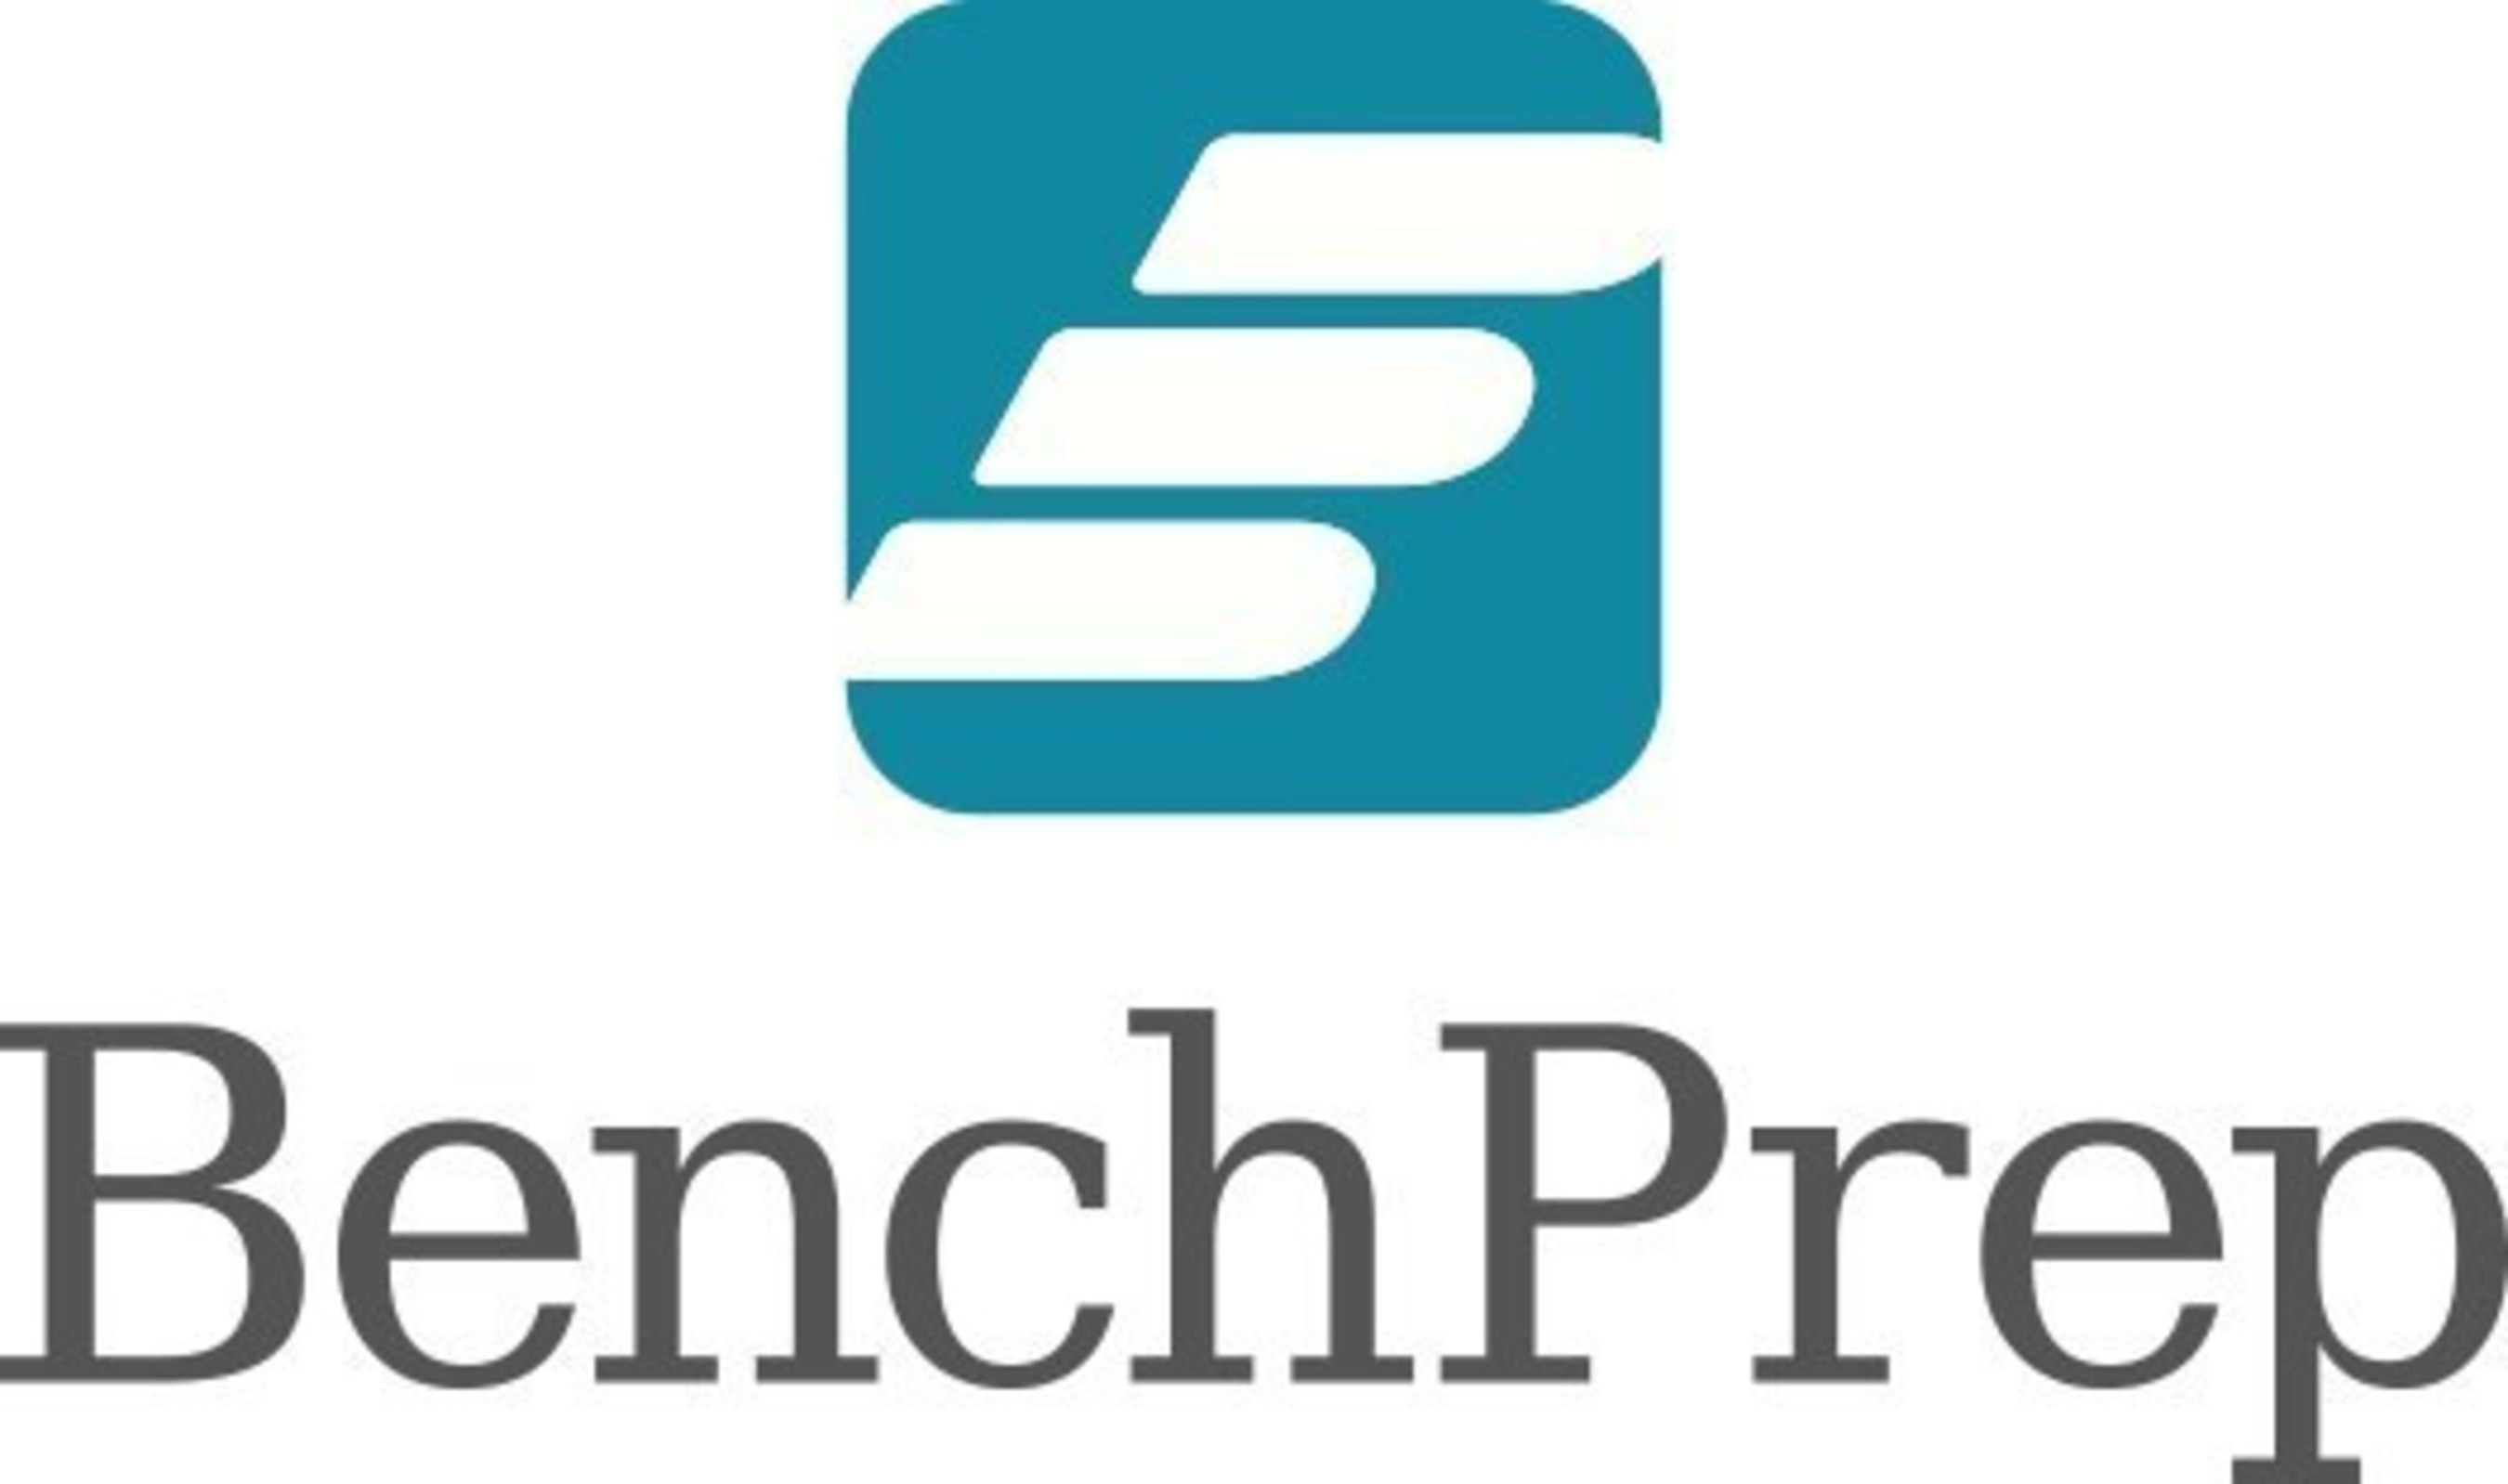 Road to Status Announces Partnership with BenchPrep to Introduce Immigration Benefits Center for Employees and Their Families